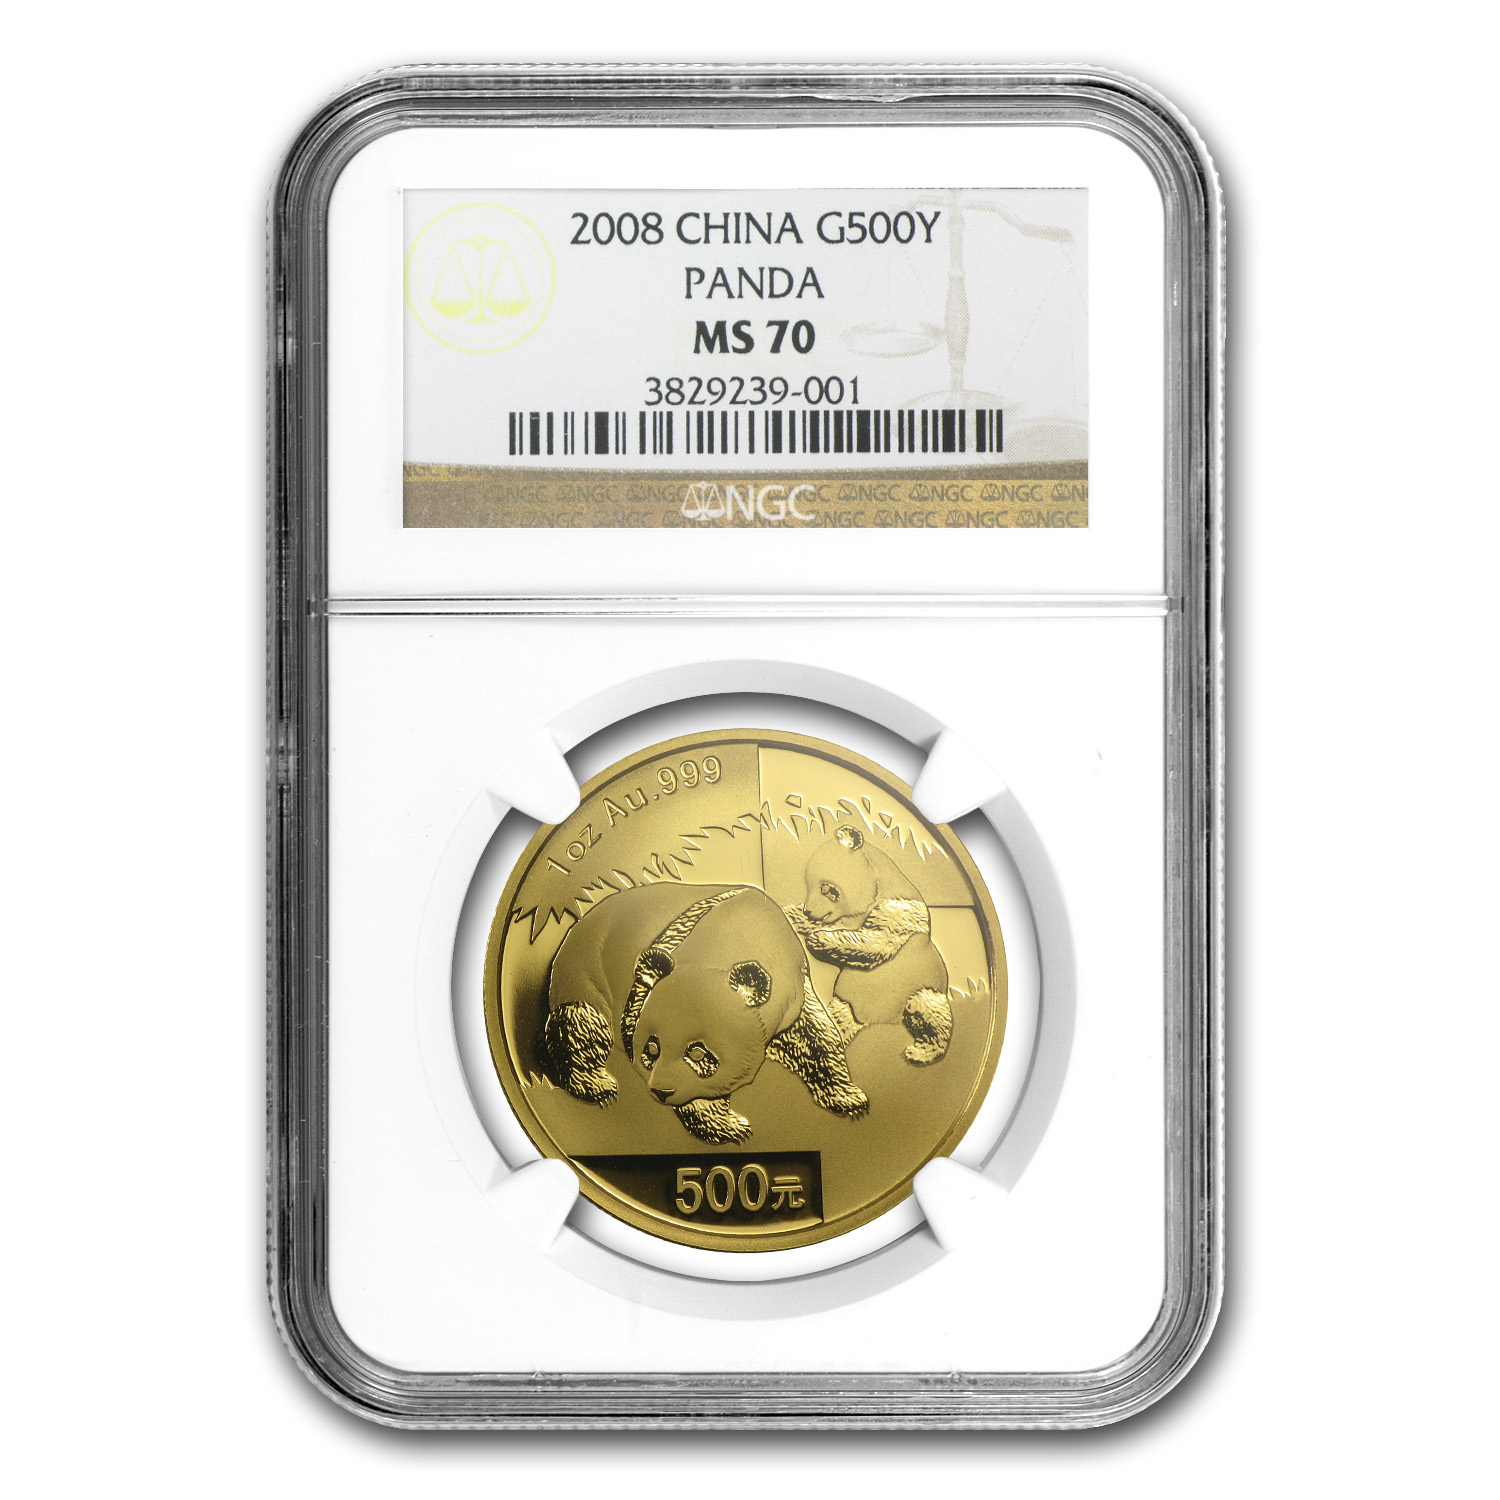 2008 China 1 oz Gold Panda MS-70 NGC